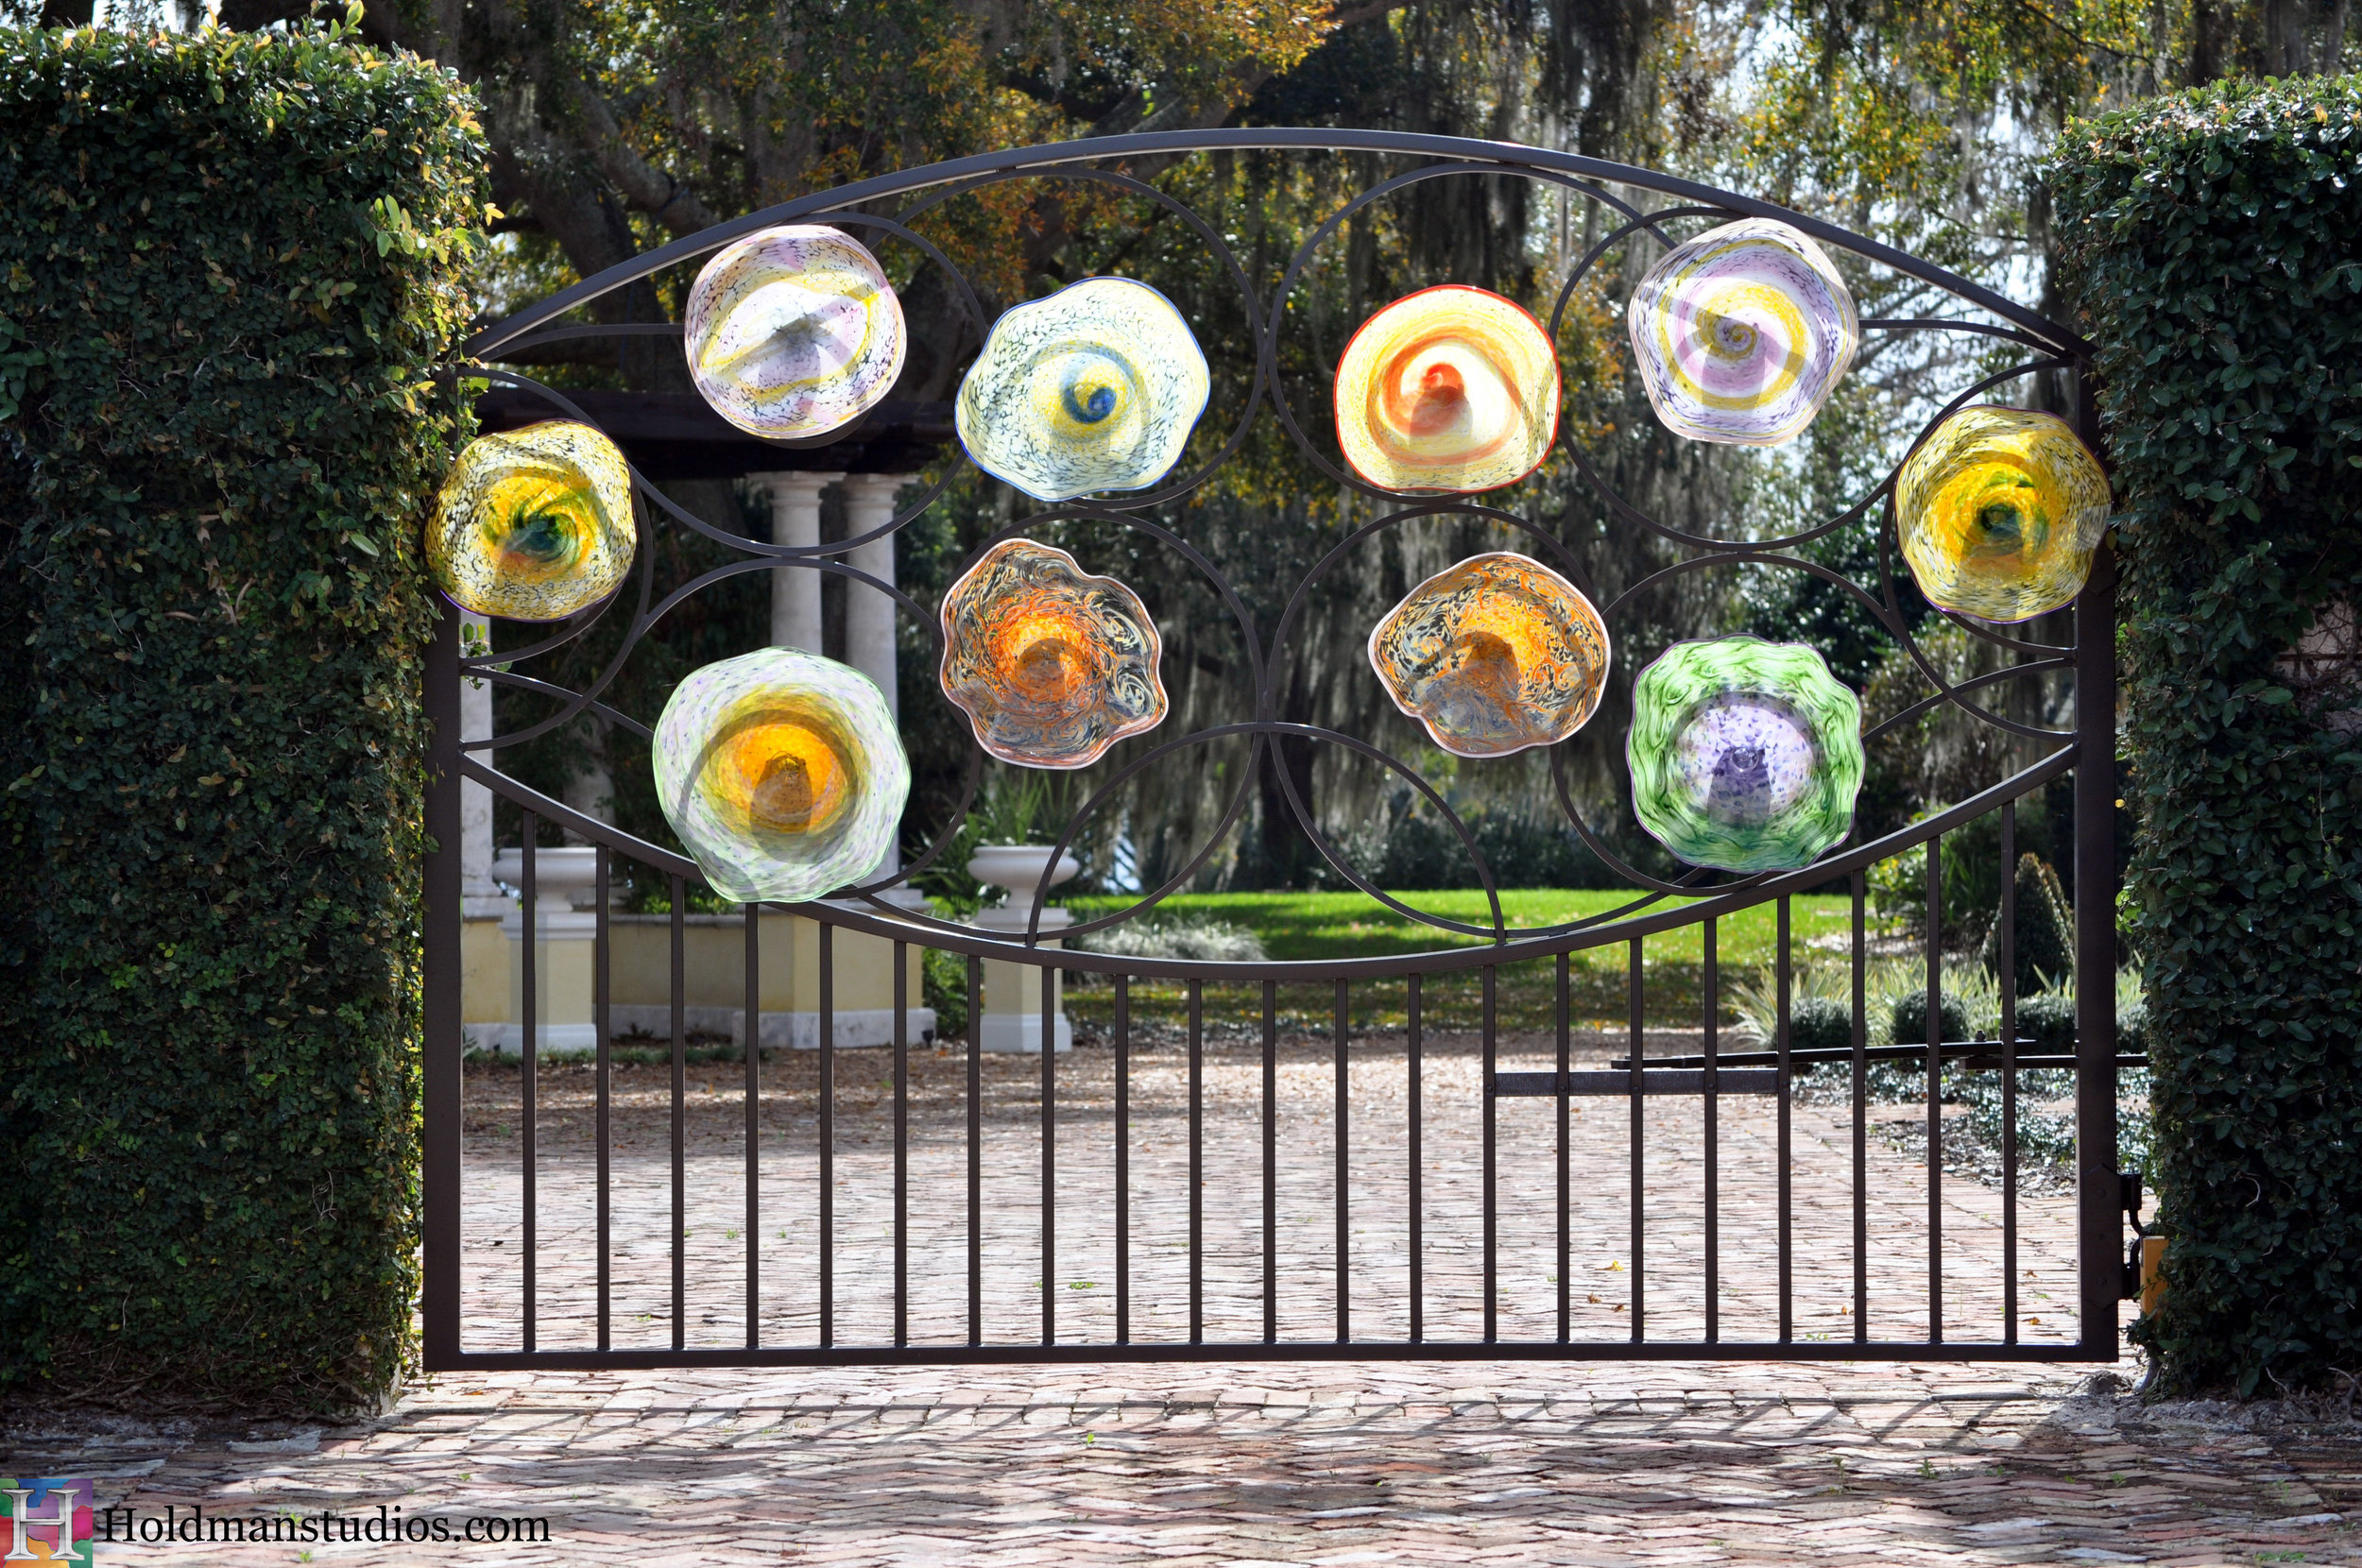 Hand blown platters on fence gate. Created by artists under the direction of Tom Holdman at Holdman Studios.